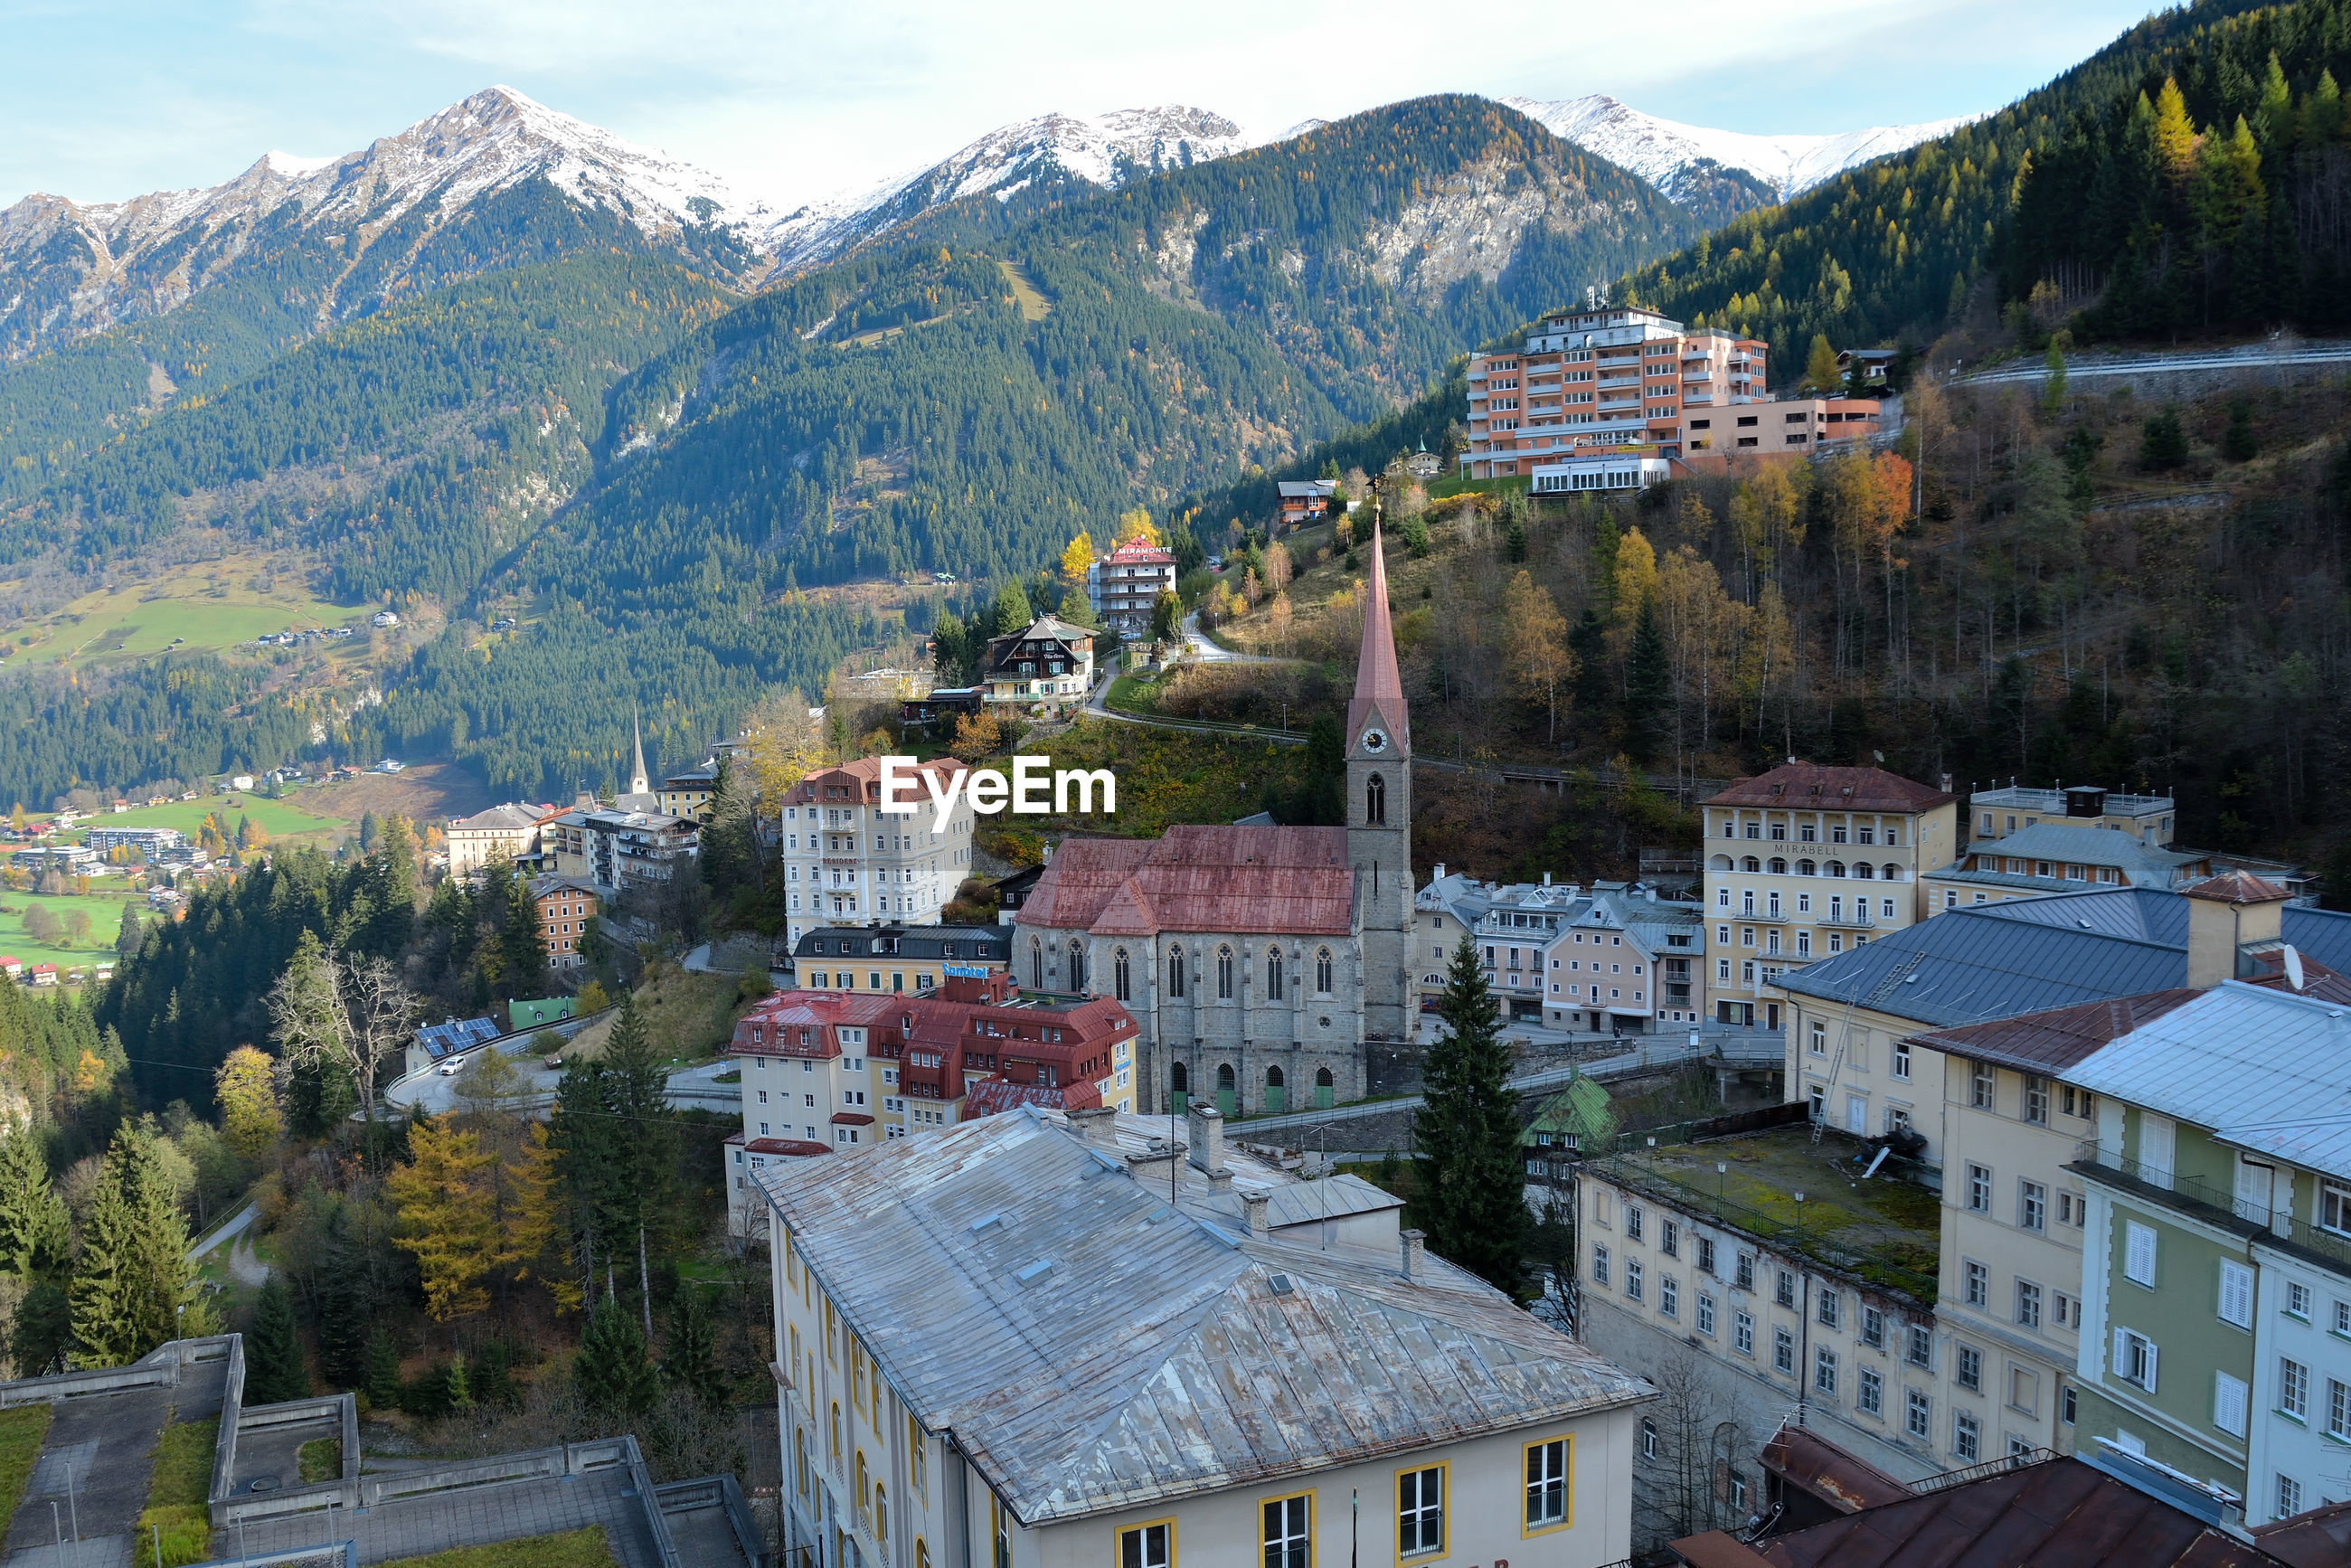 HIGH ANGLE VIEW OF TOWNSCAPE AND BUILDINGS